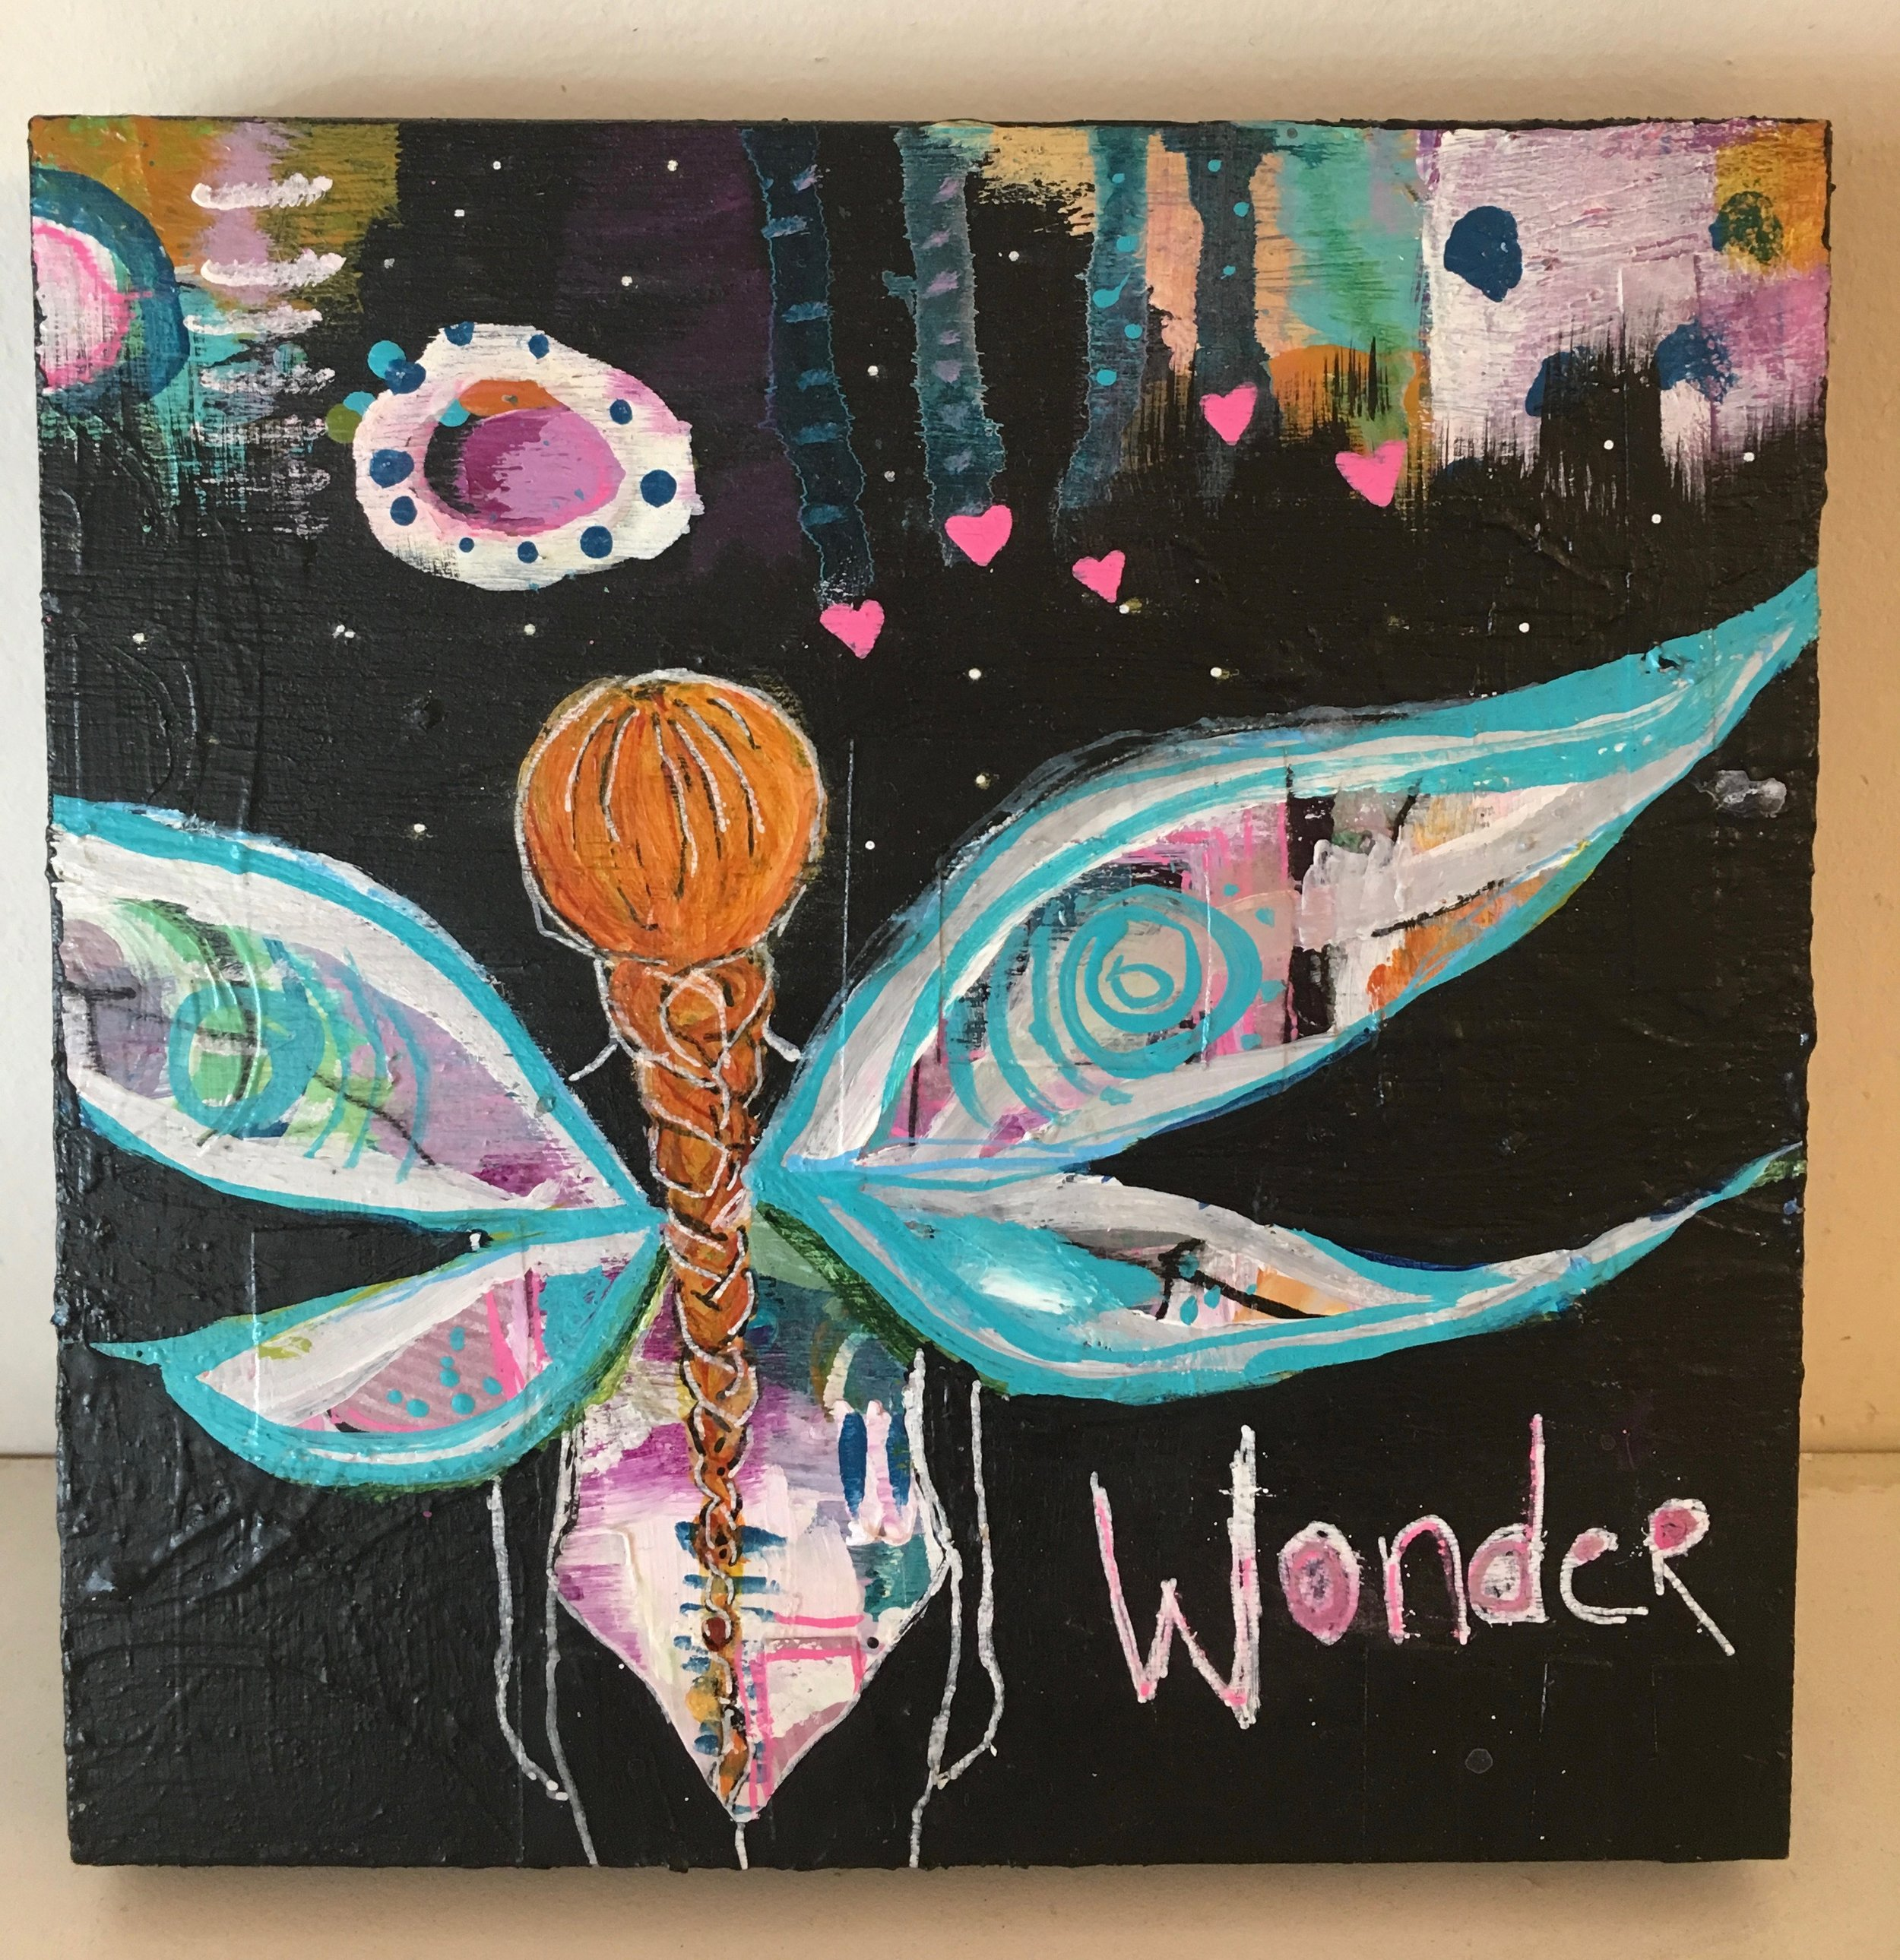 """Wonder""  Mixed media  6"" x 6"" wood block"